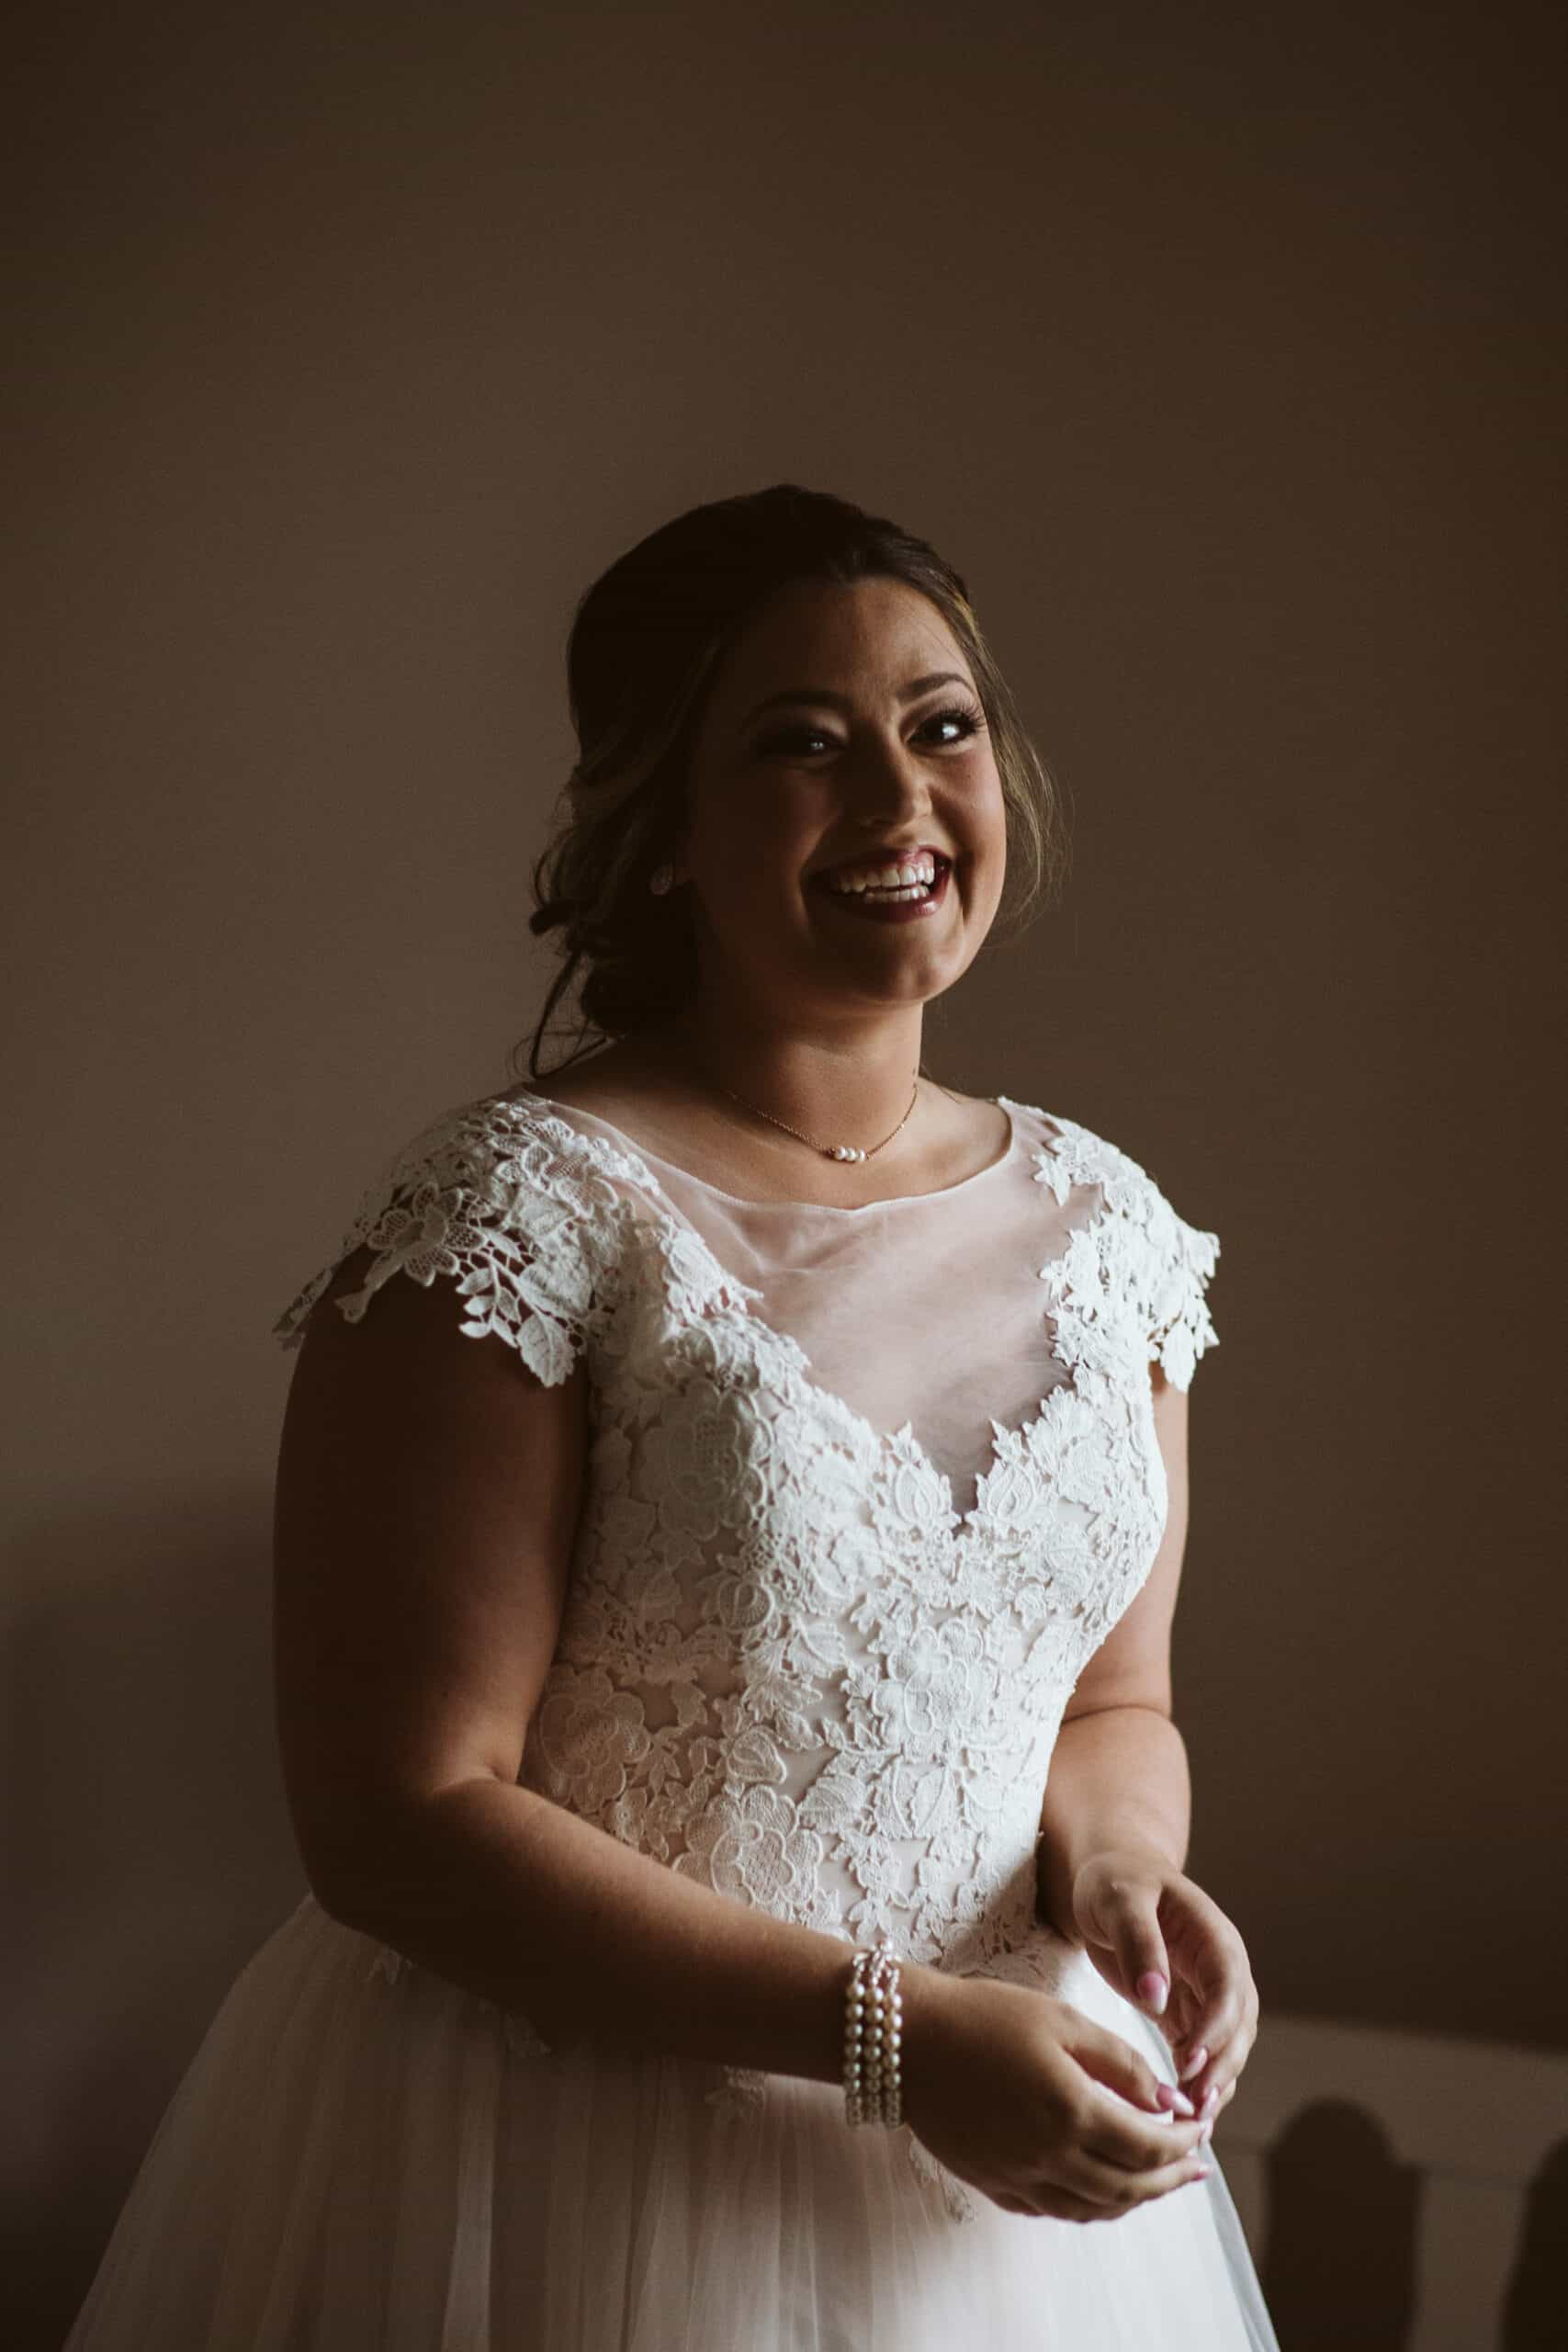 Cliffs of Moher Wedding Hags head, brie giggling in window light